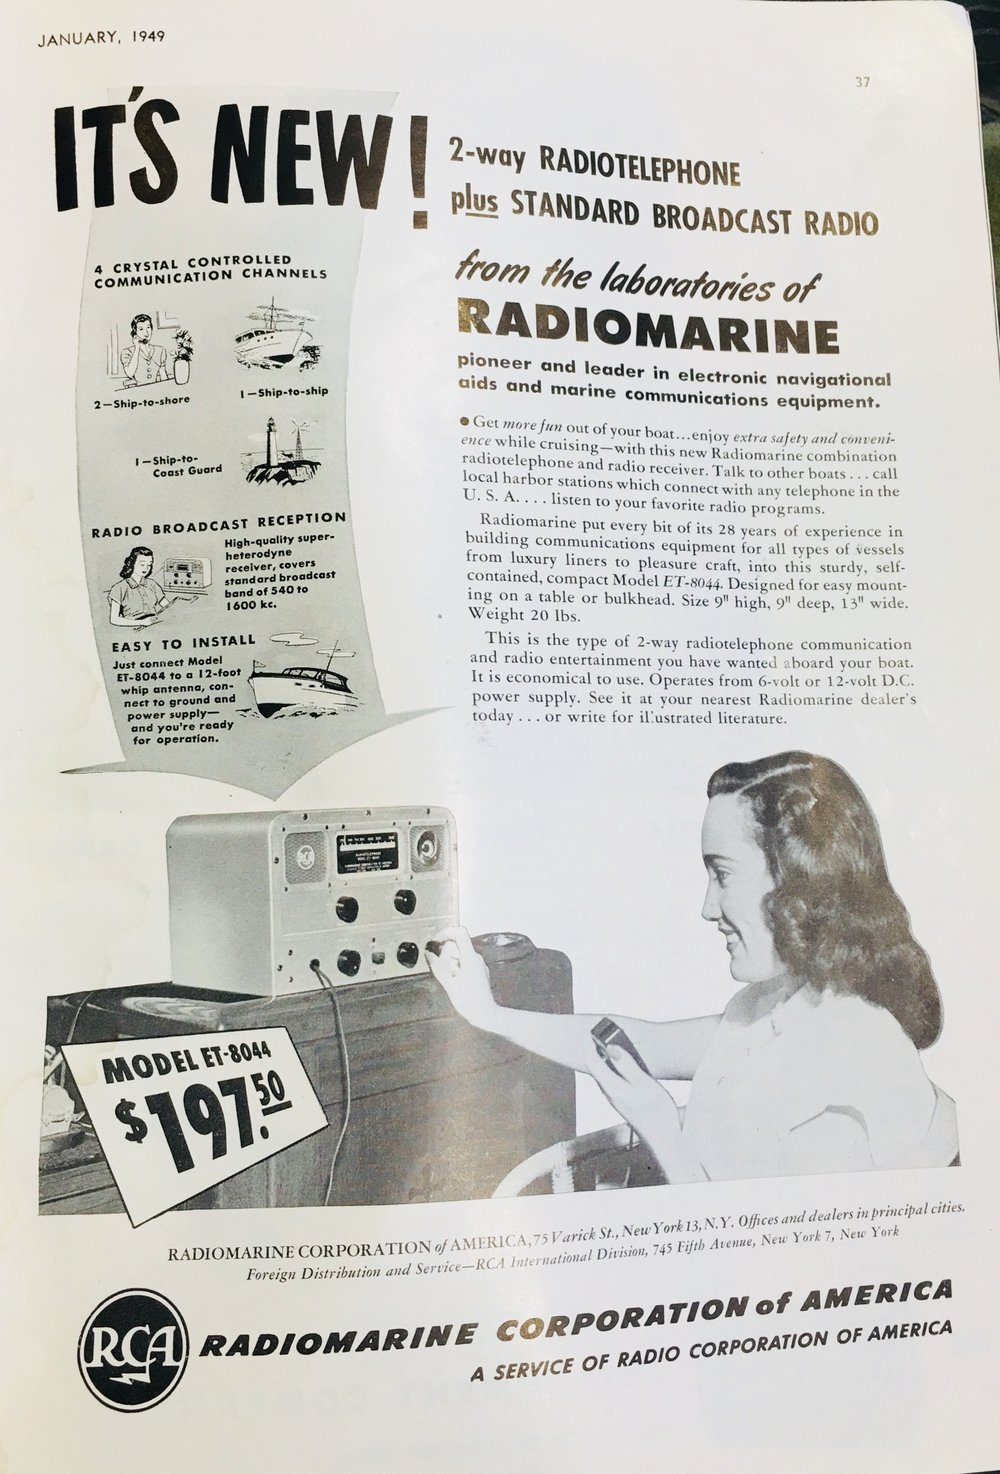 """Radio communications and """"electronics"""" gathered momentum following the war, and as transistors and other inventions became more common, the world changed. Remember when radios used vacuum tubes? Did you ever build a crystal radio as a kid?"""